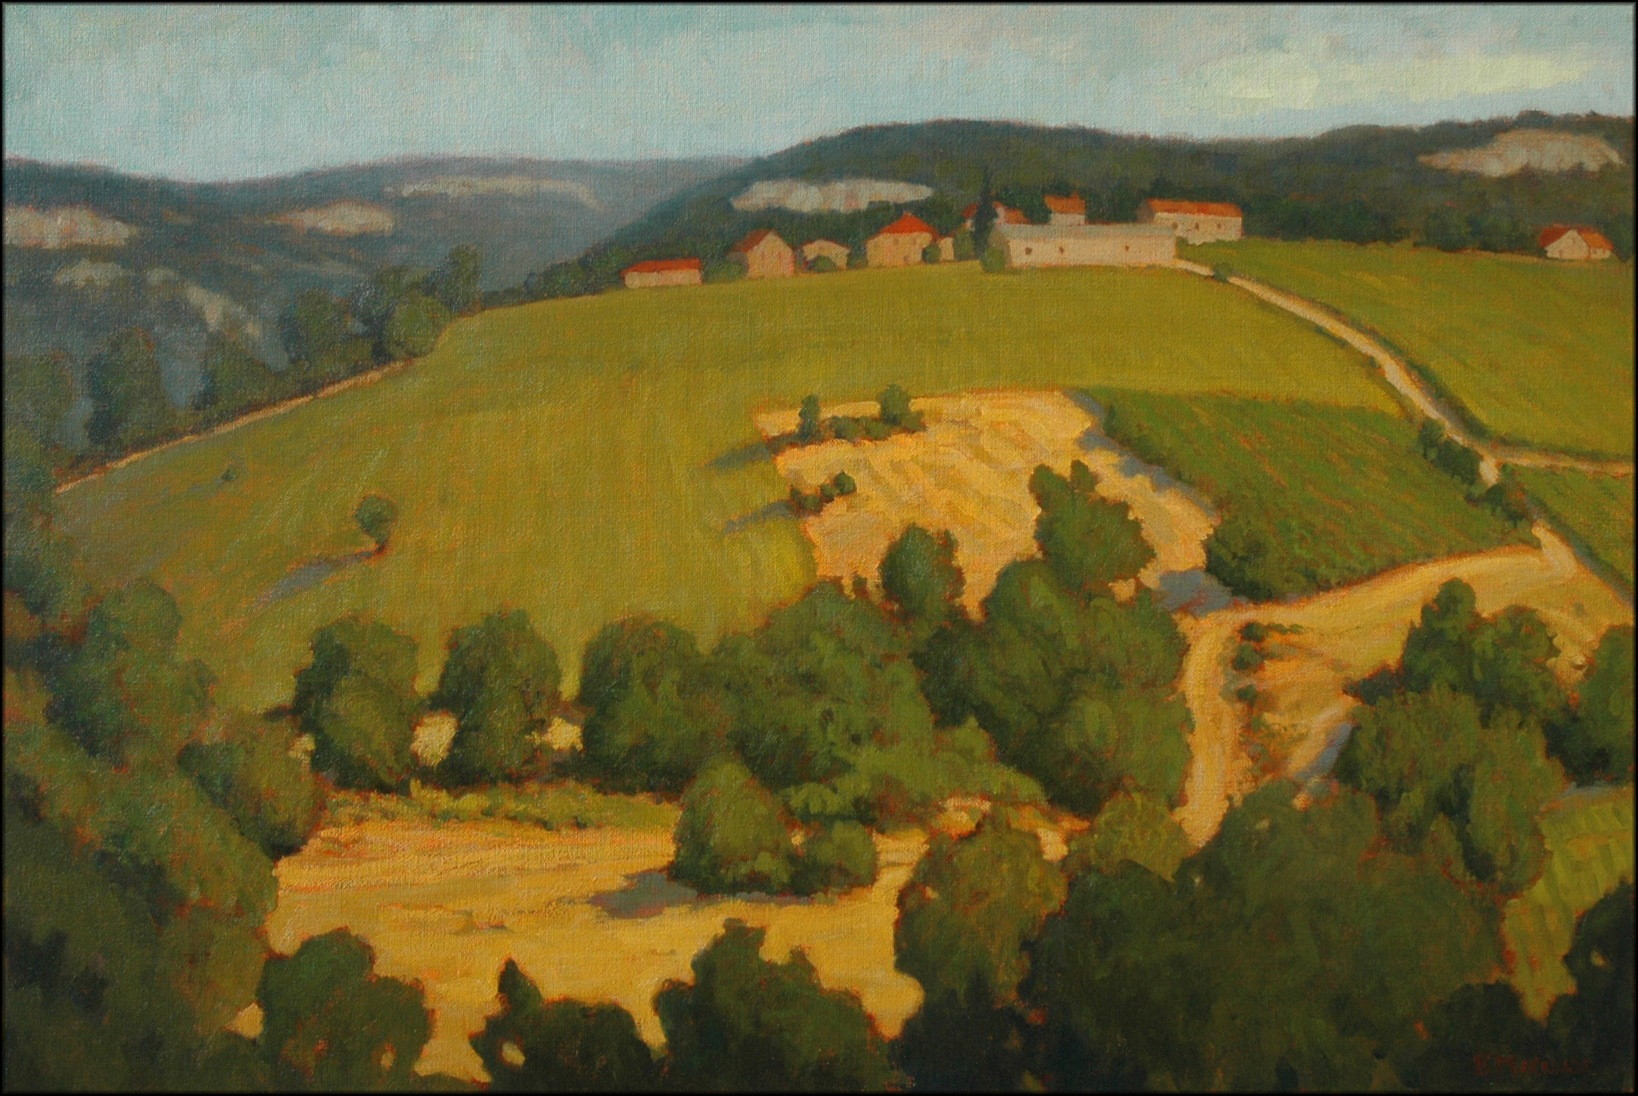 Coeur de Ferme, Lot Valley 24x36.jpg